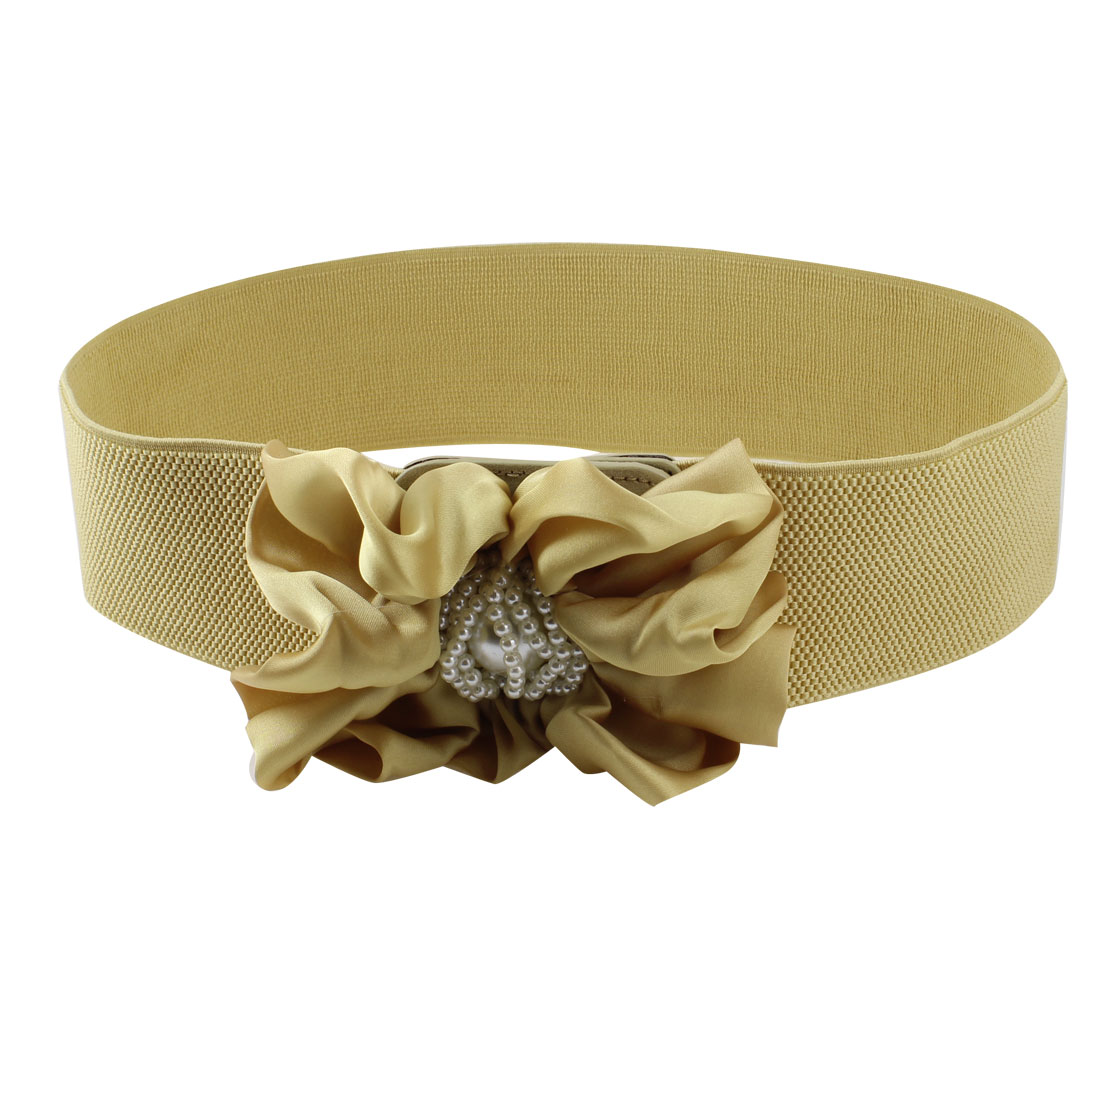 Women Champagne Color Floral Decor Press Stud Button Closure Cinch Belt